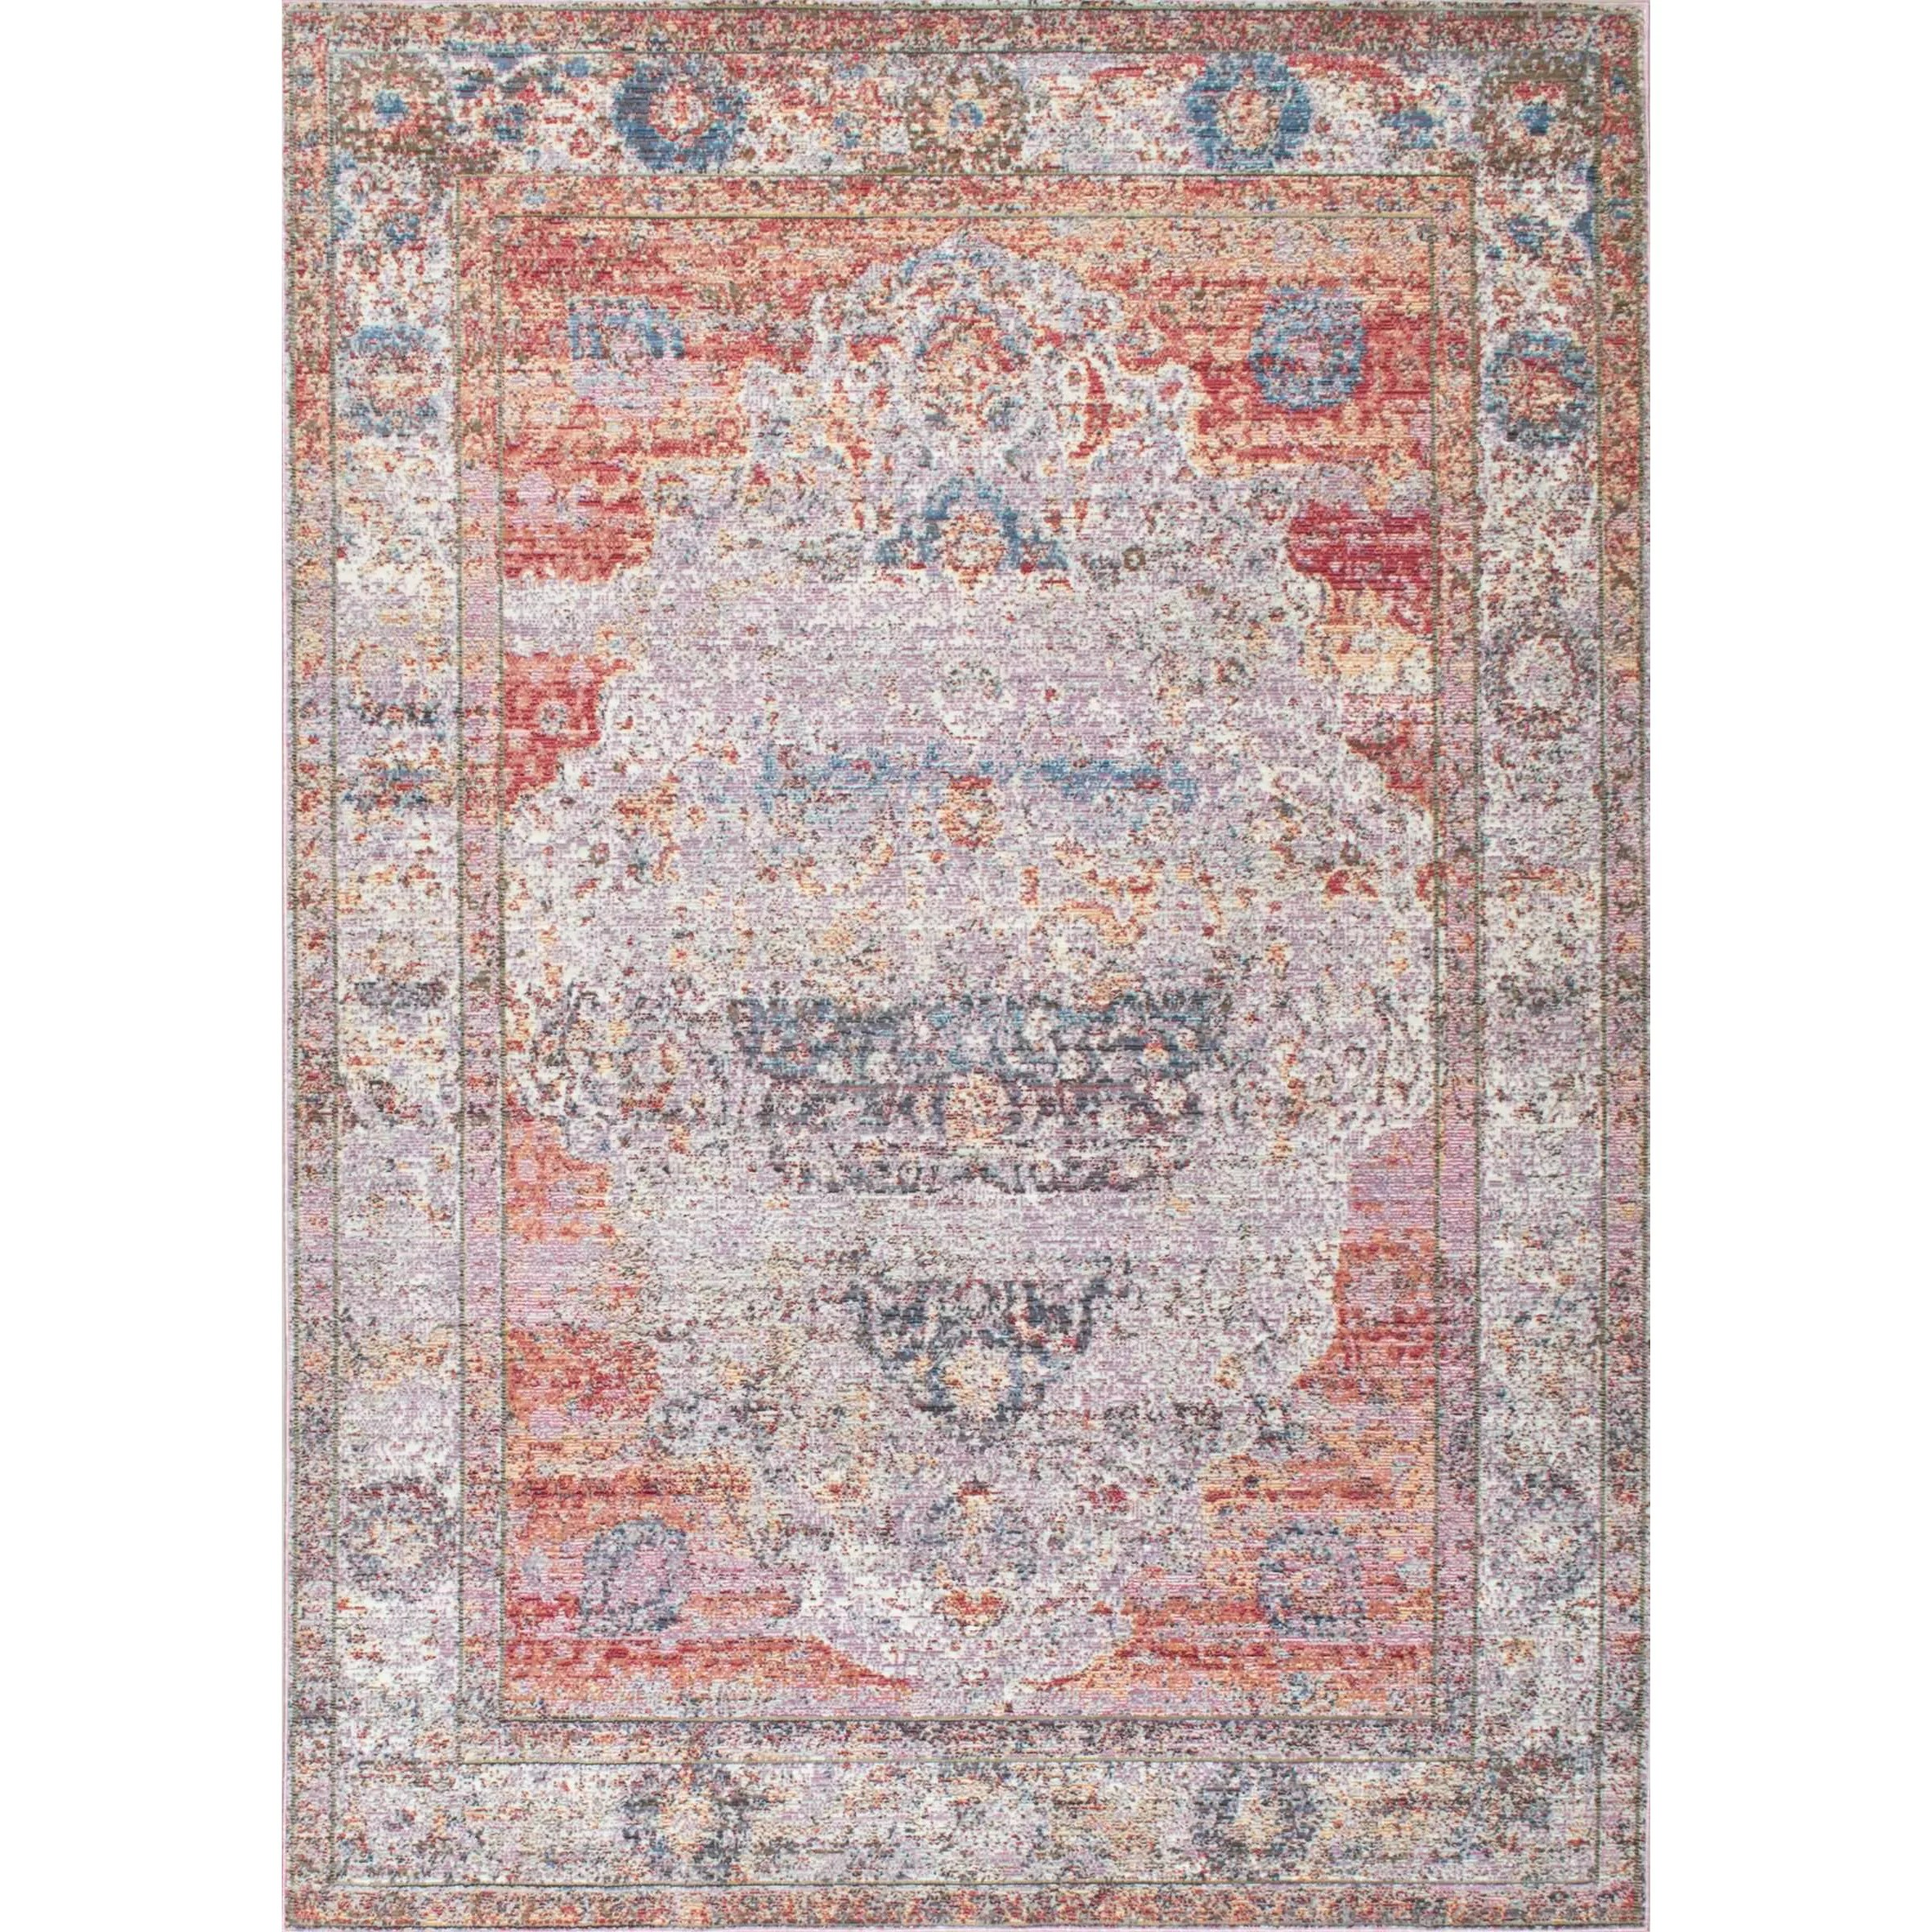 Blush Rug Bungalow Rose Hruby Blush Area Rug And Reviews Wayfair